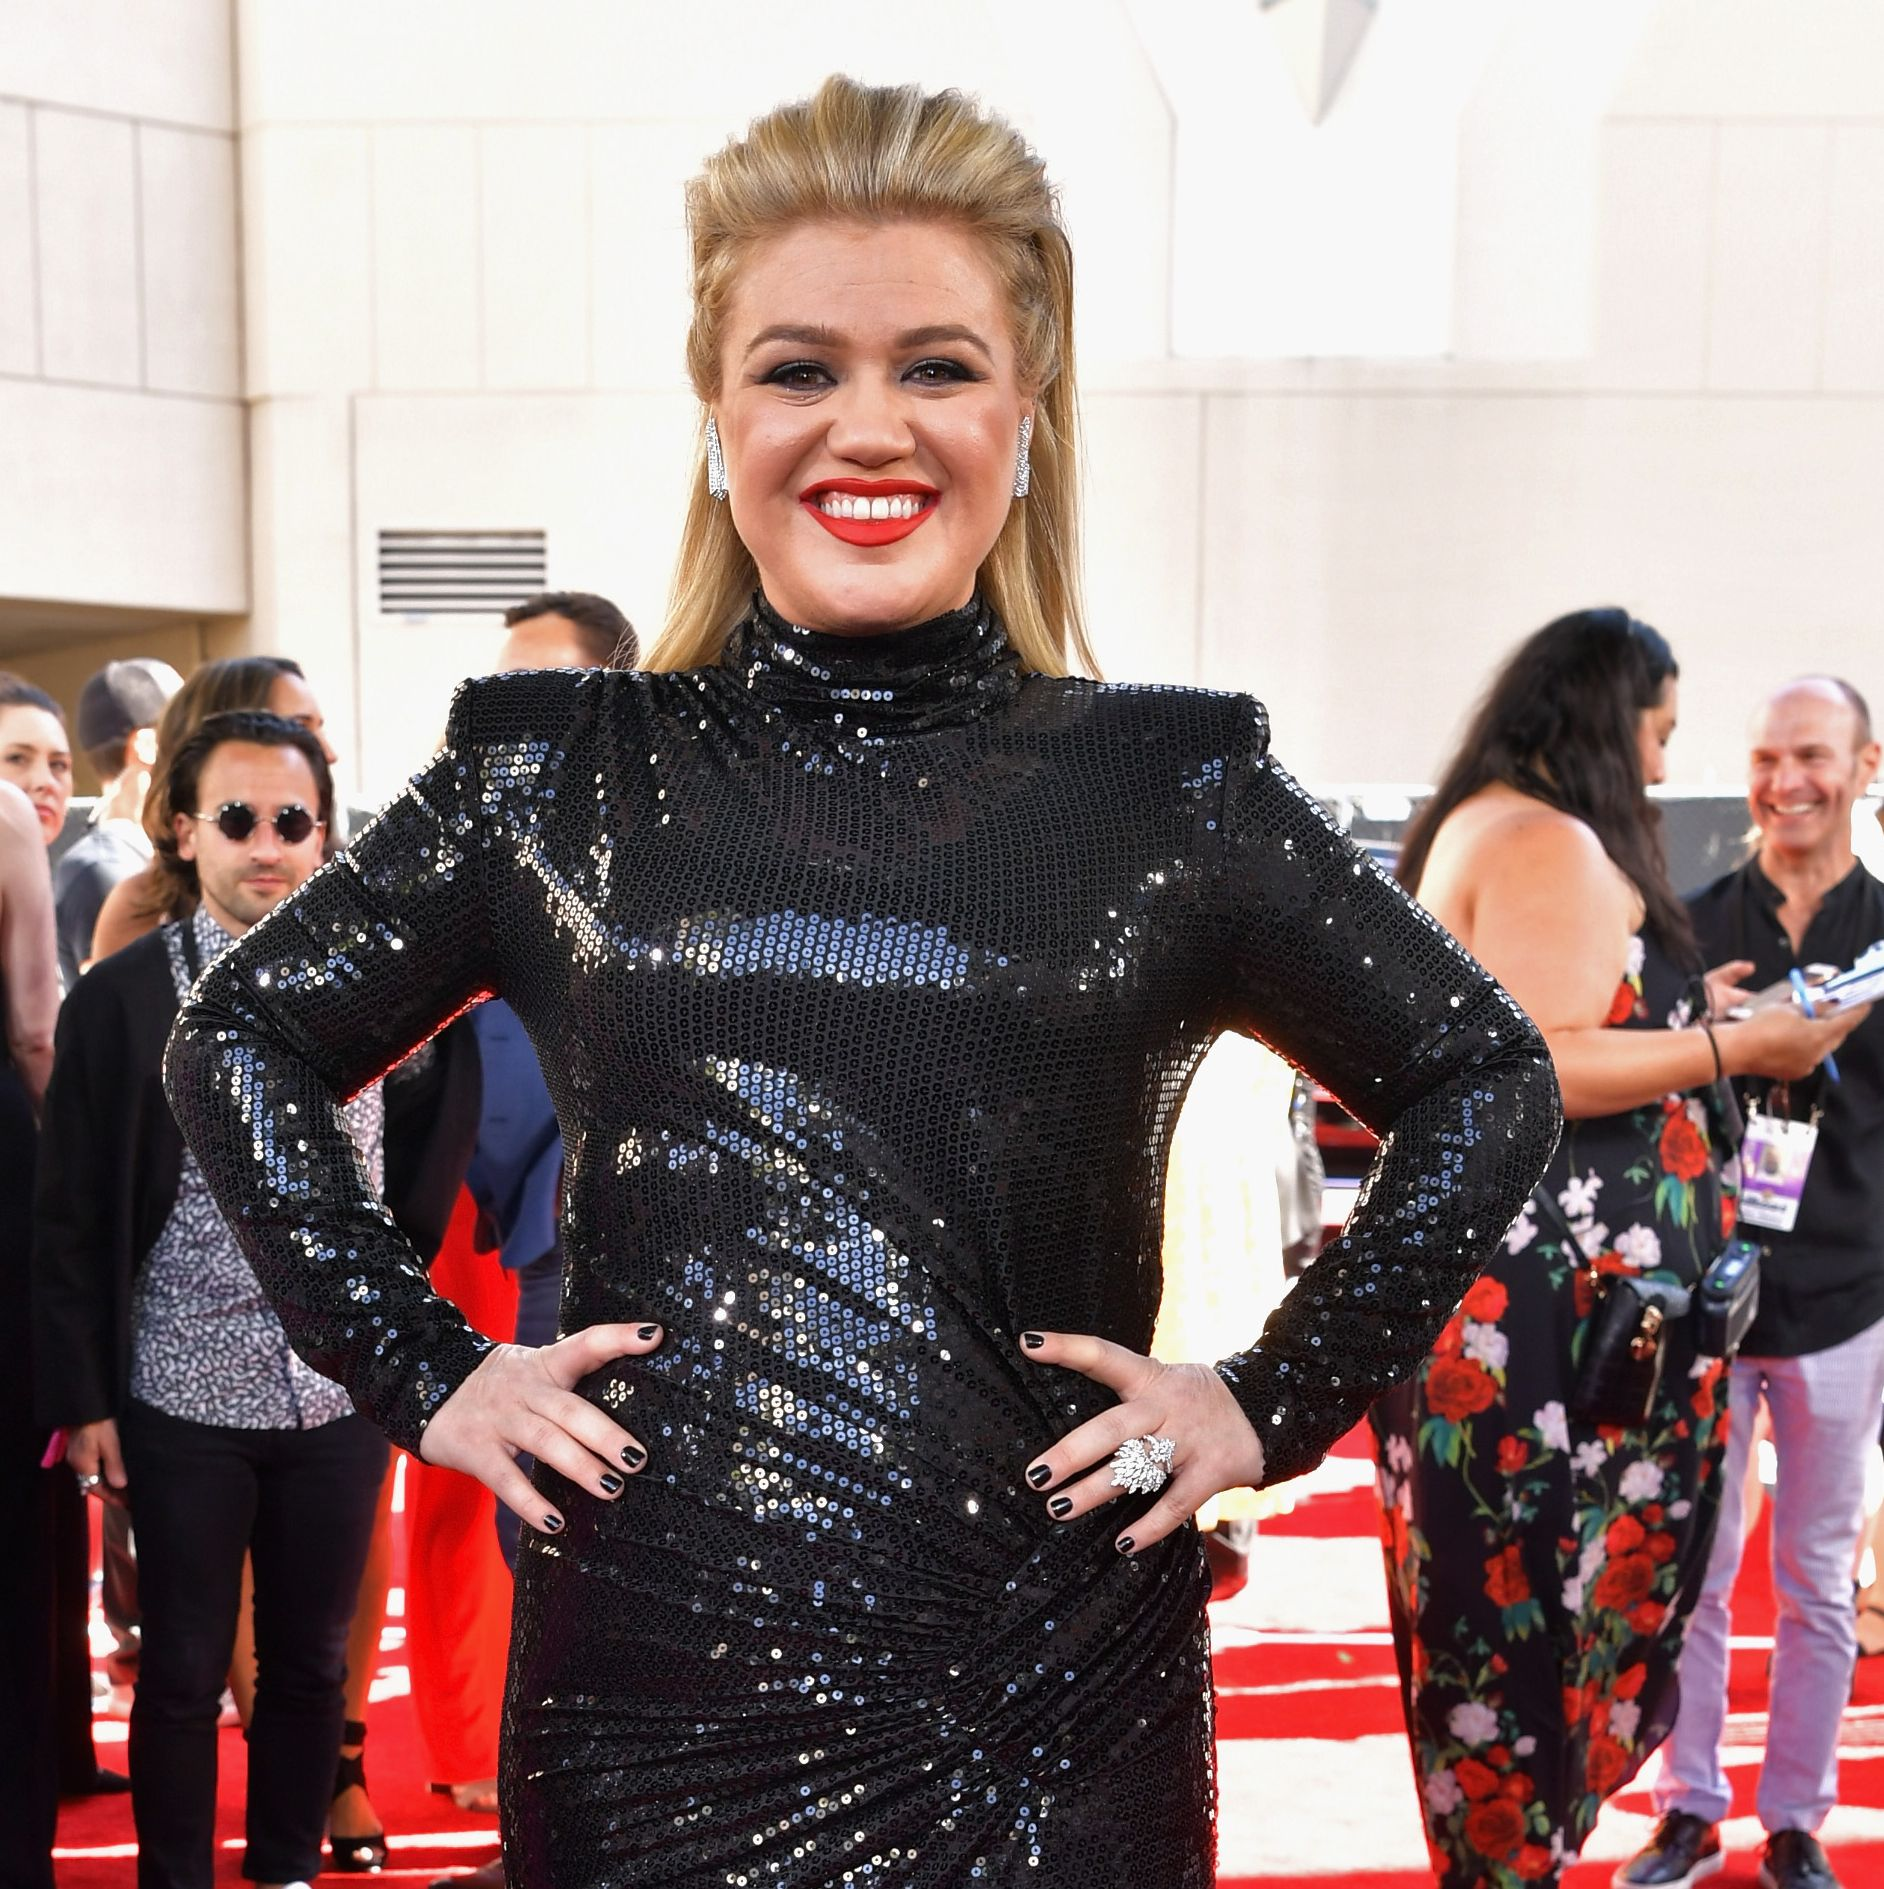 Kelly Clarkson Was Rushed into Appendix Surgery HOURS After Hosting the BBMAs